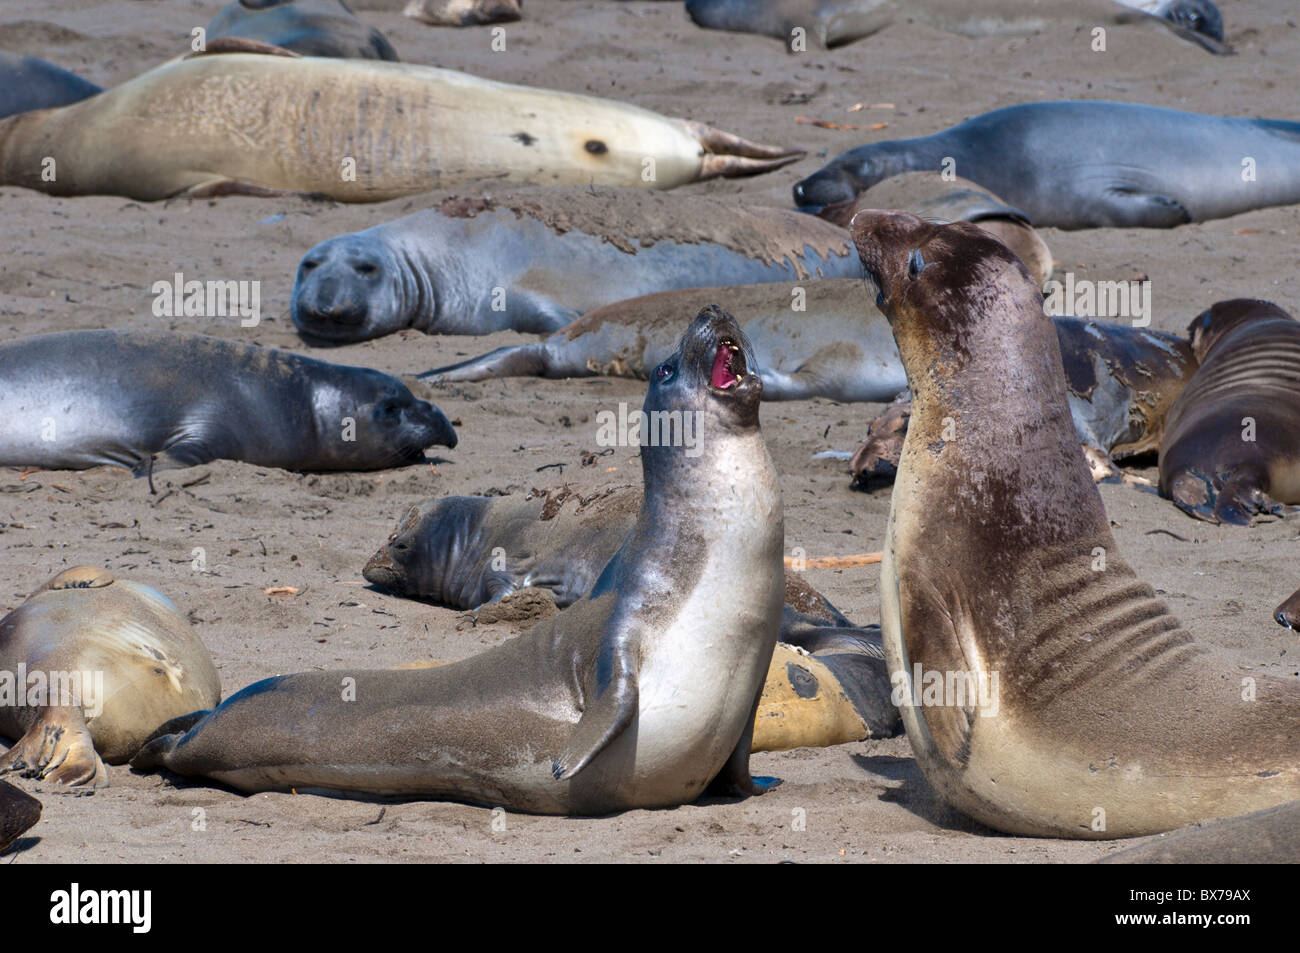 Elephant seals moulting, Piedras Blancas (White Rocks), Highway 1, California, United States of America, North America - Stock Image